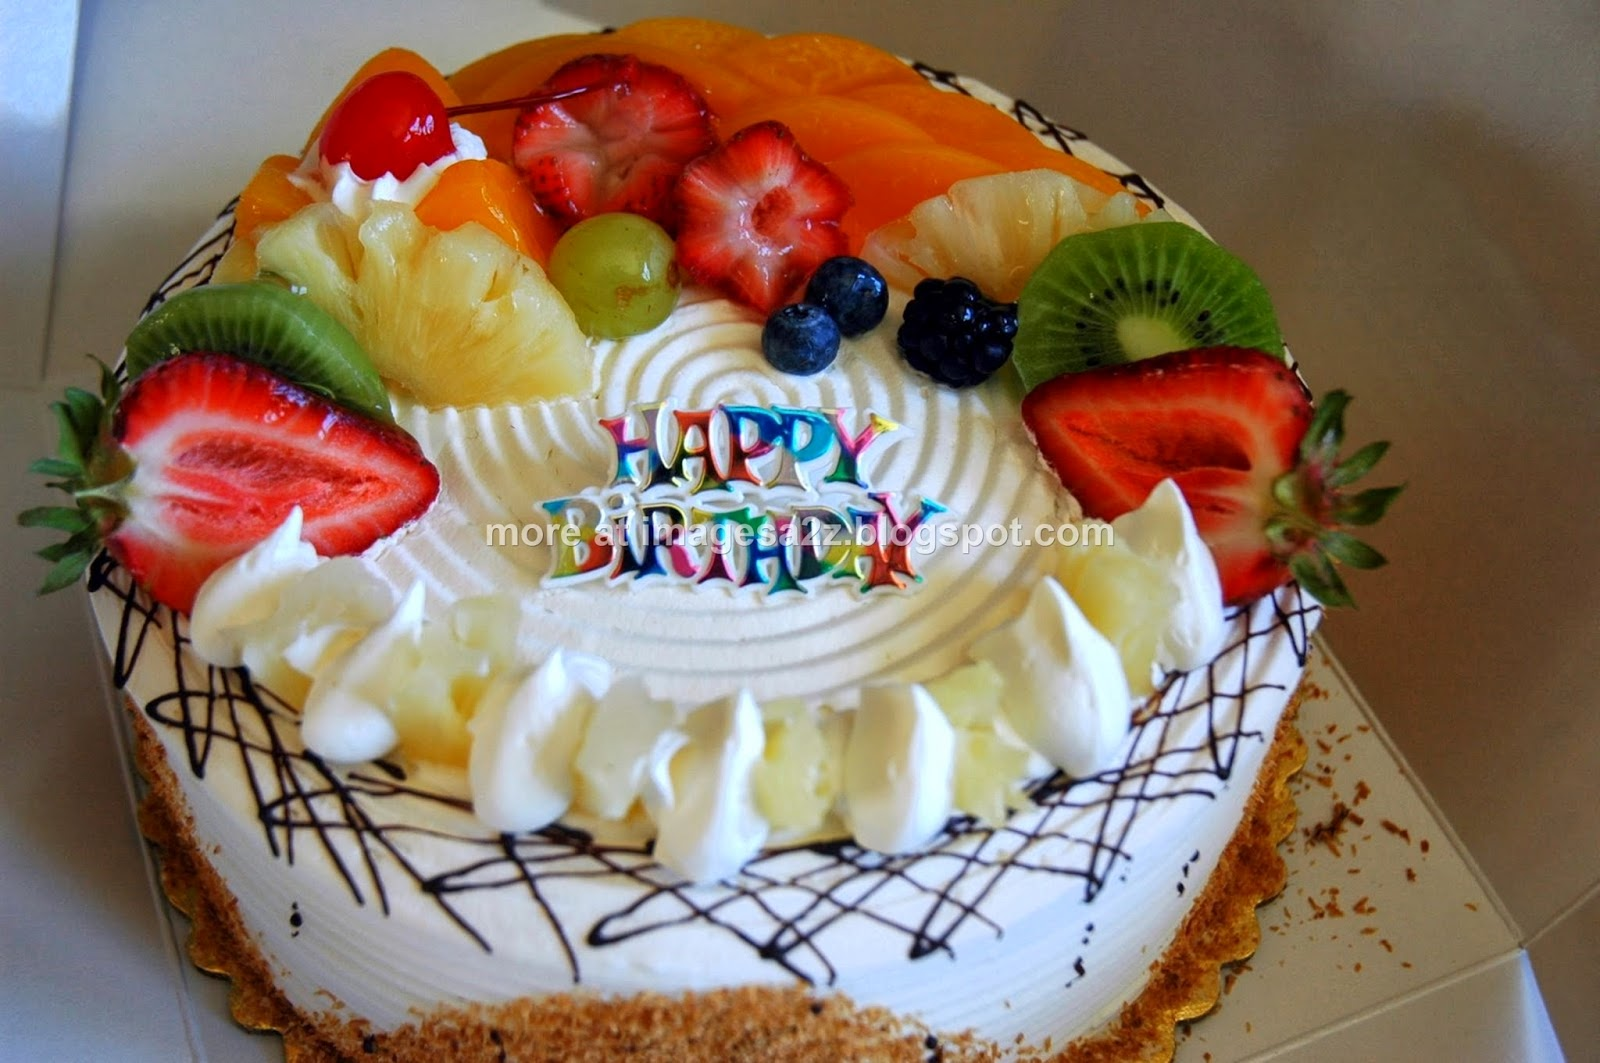 Images Of Cake With Wishes : birthday wishes for sister with cake images - happy ...